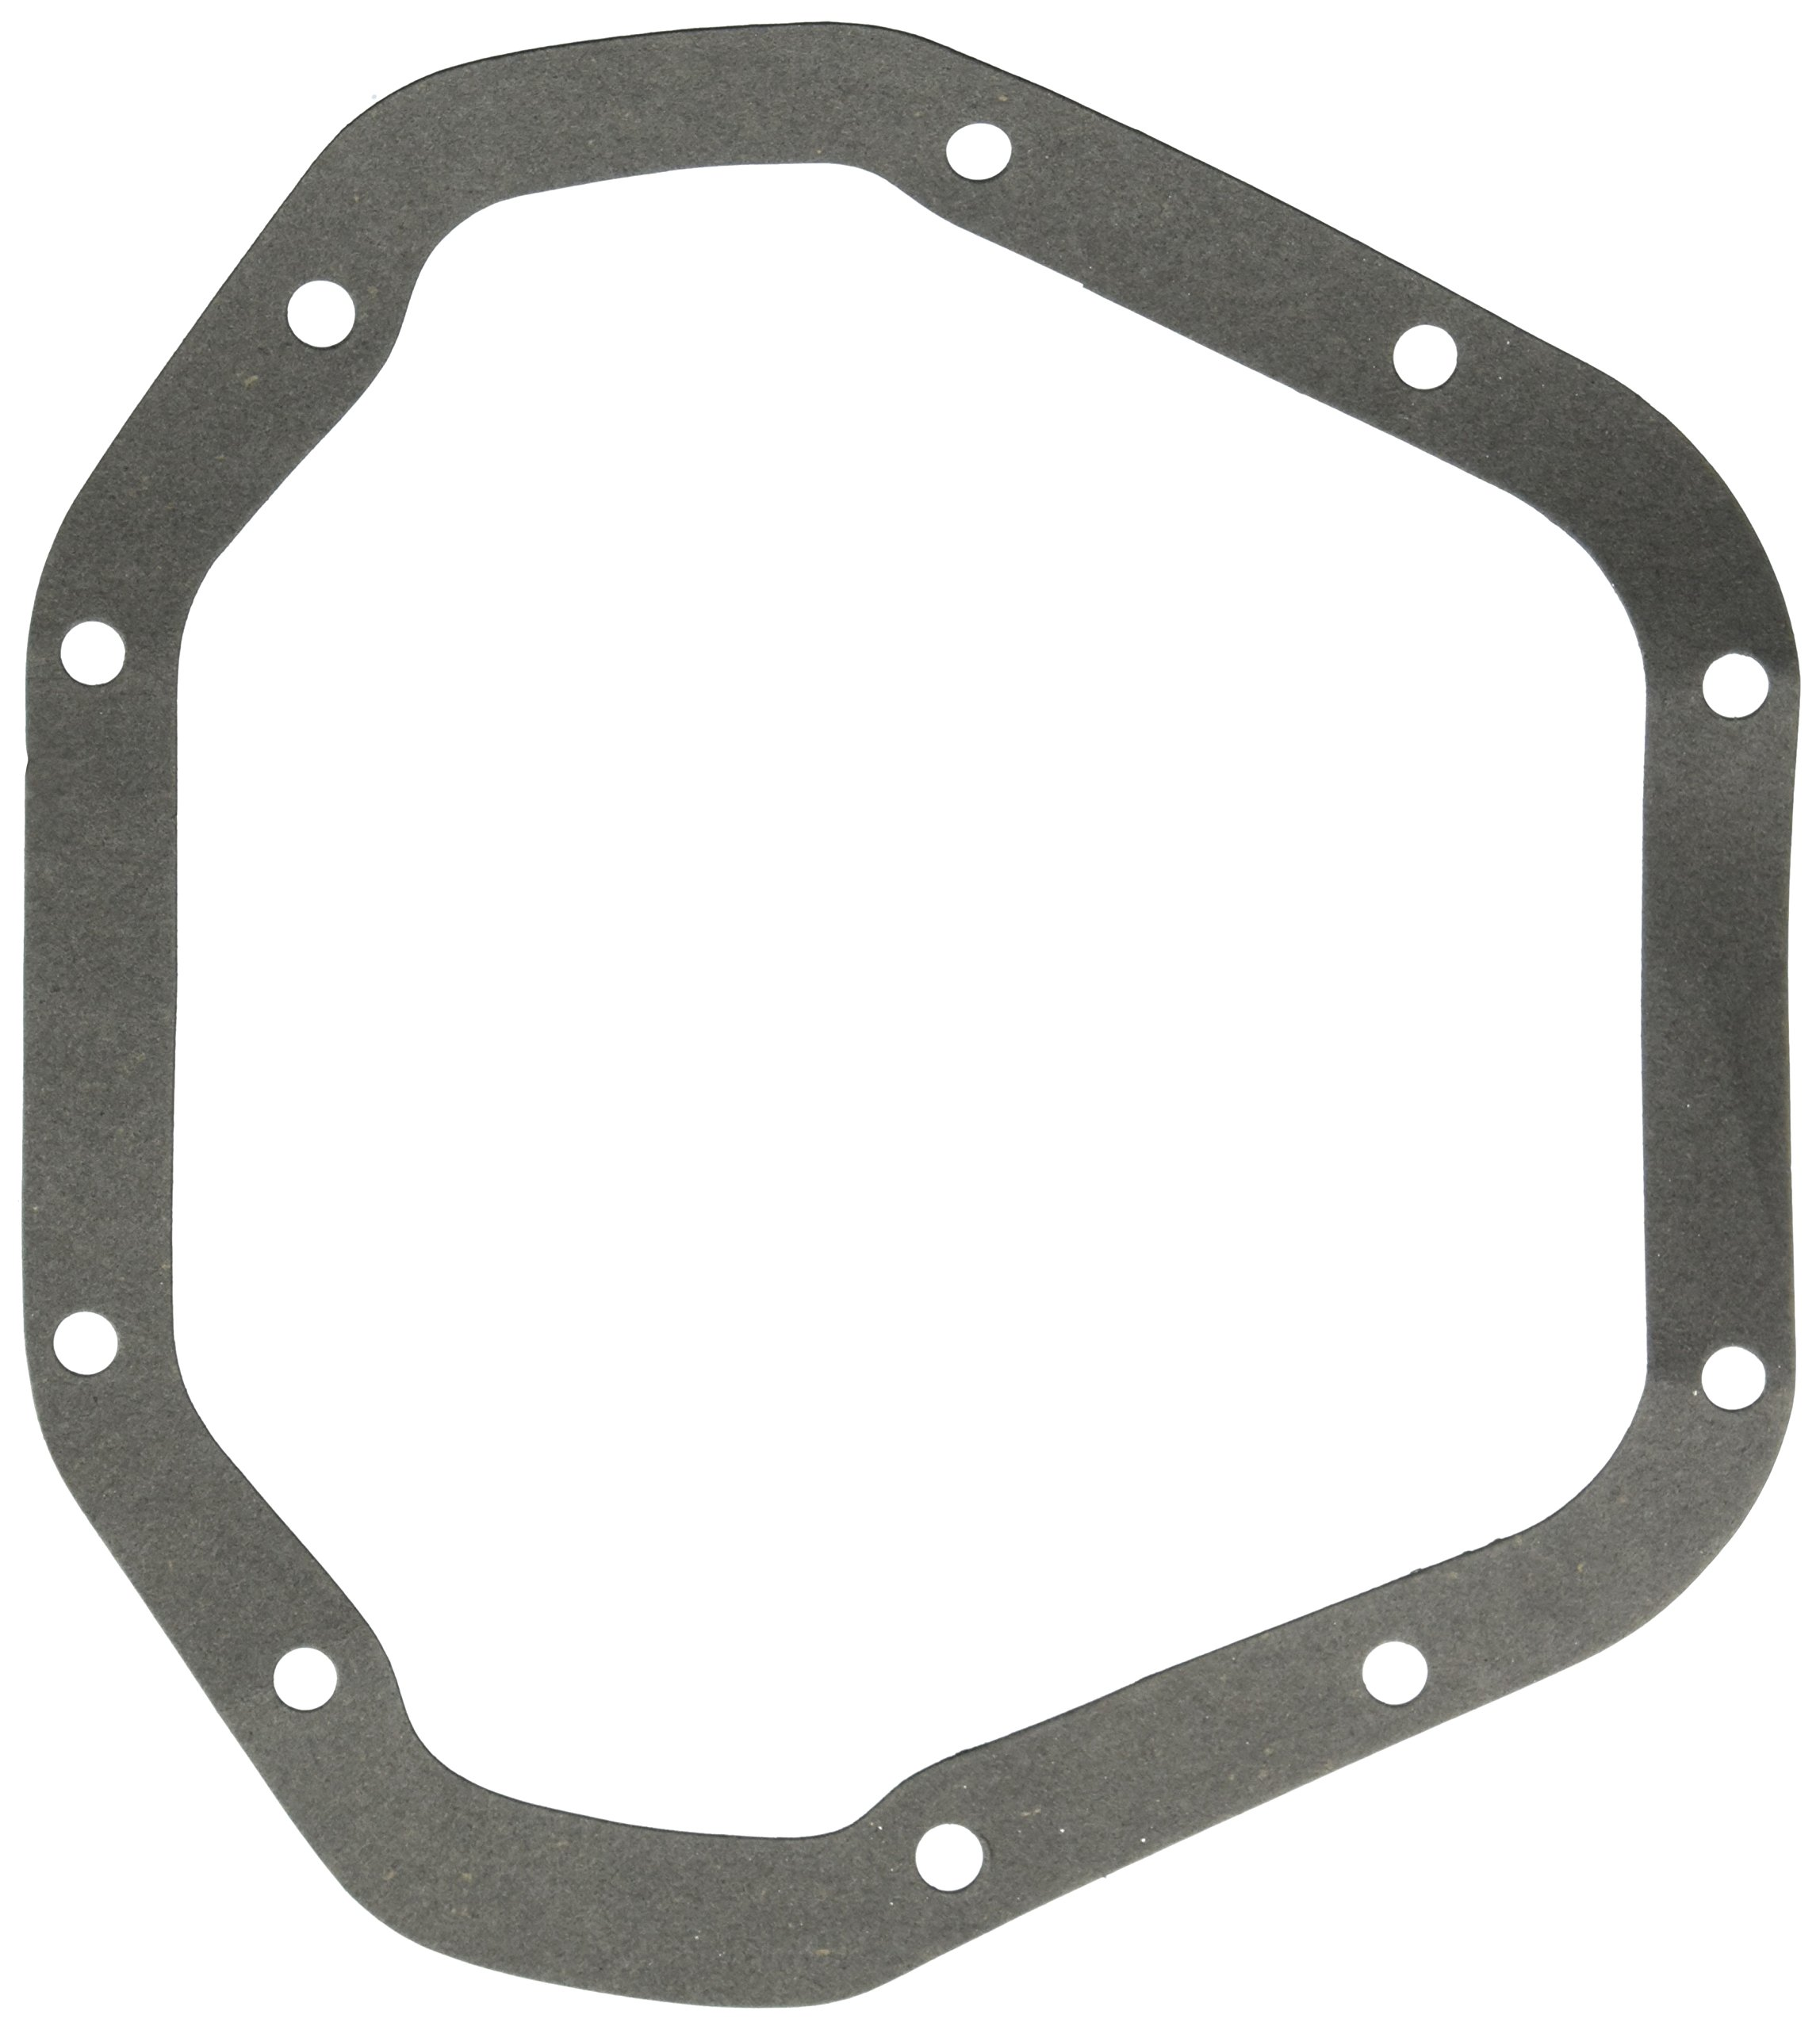 Motive Gear 5117 Dana-70 Differential Cover Gasket